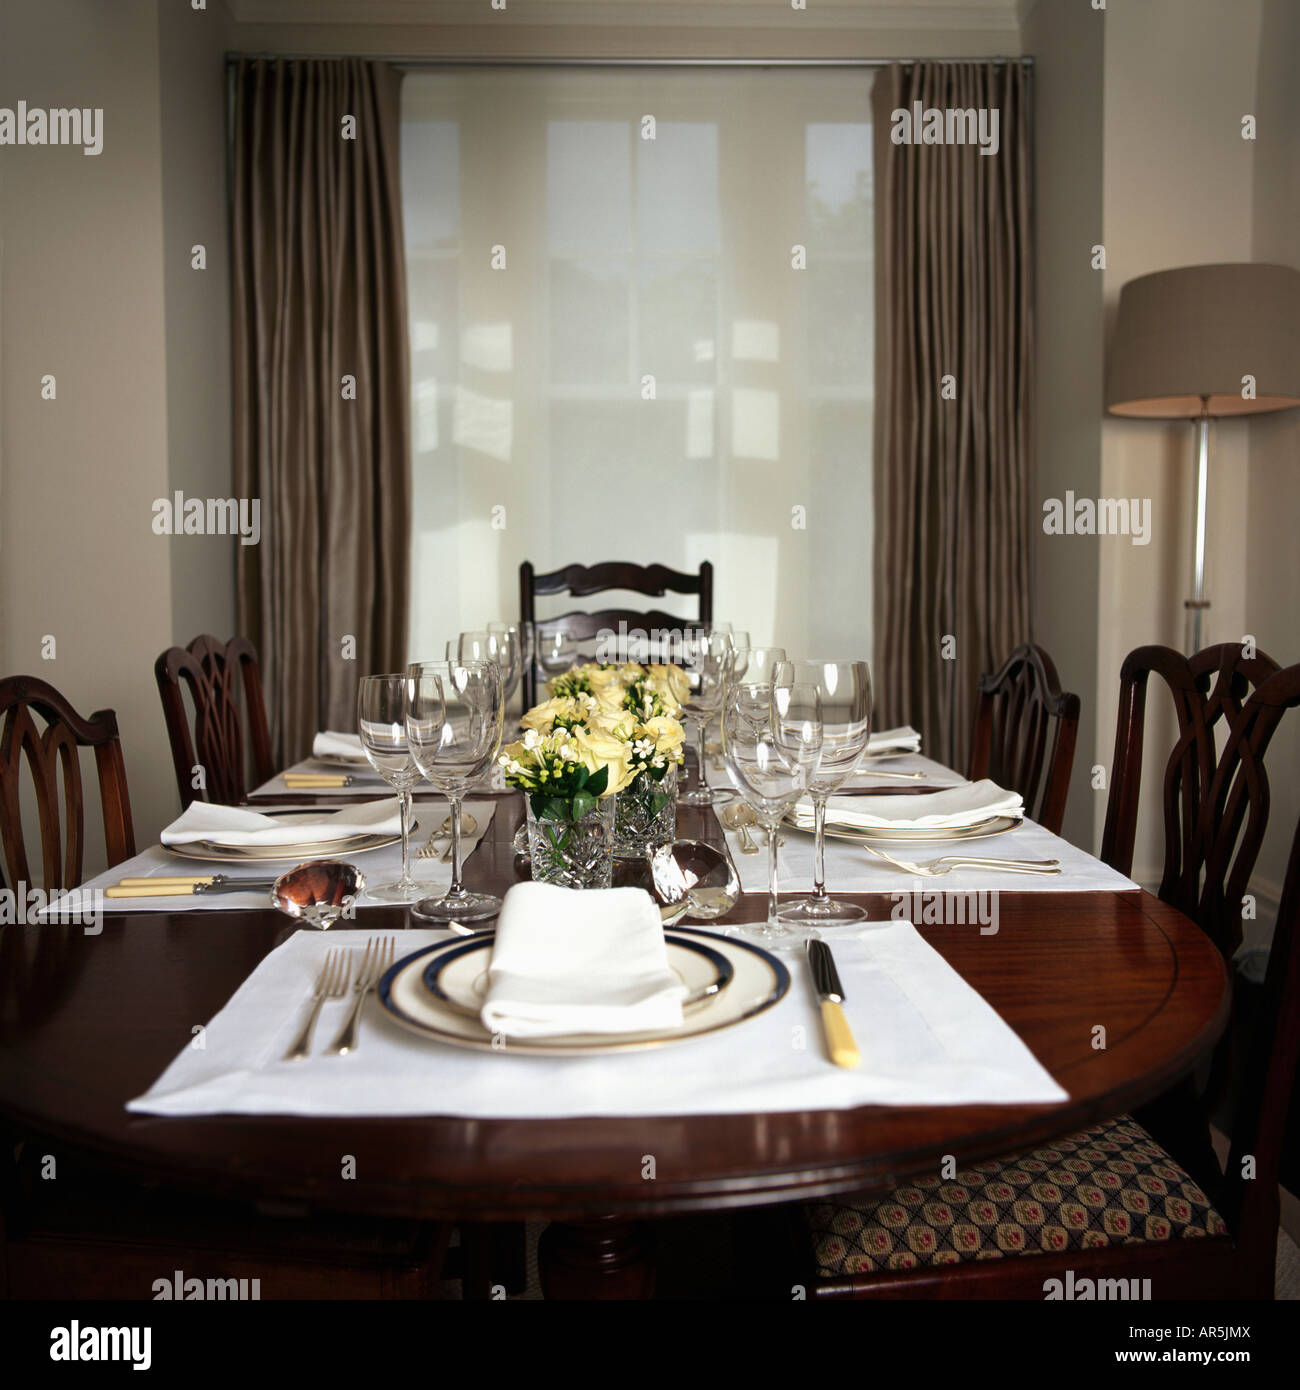 White Placemats And Plates In Modern Grey Dining Room With Blind Curtains